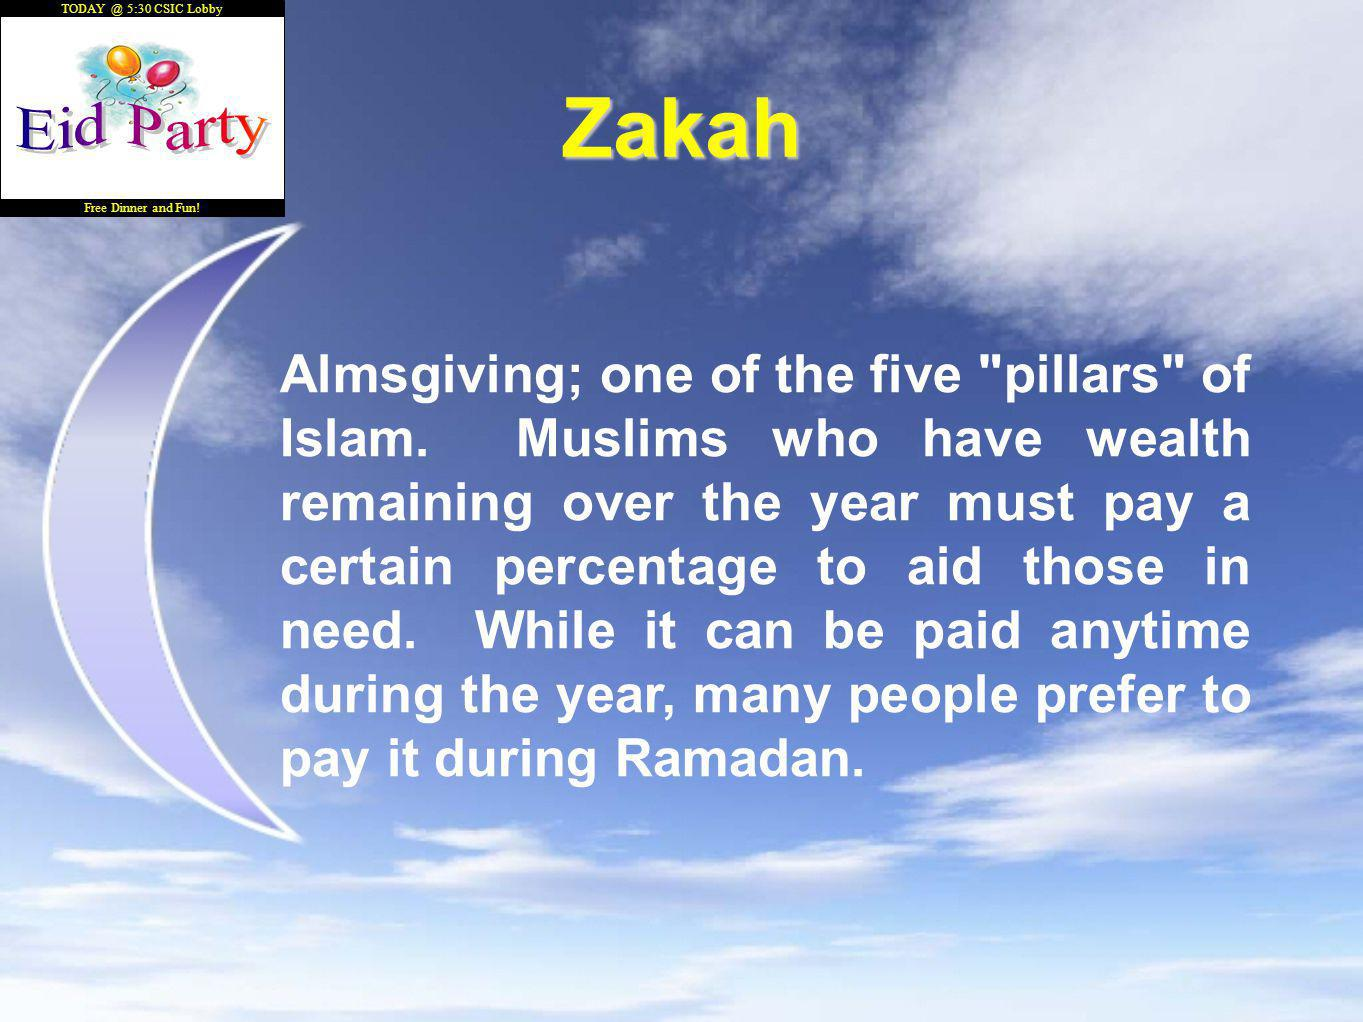 5:30 CSIC Lobby Free Dinner and Fun. Zakah Almsgiving; one of the five pillars of Islam.